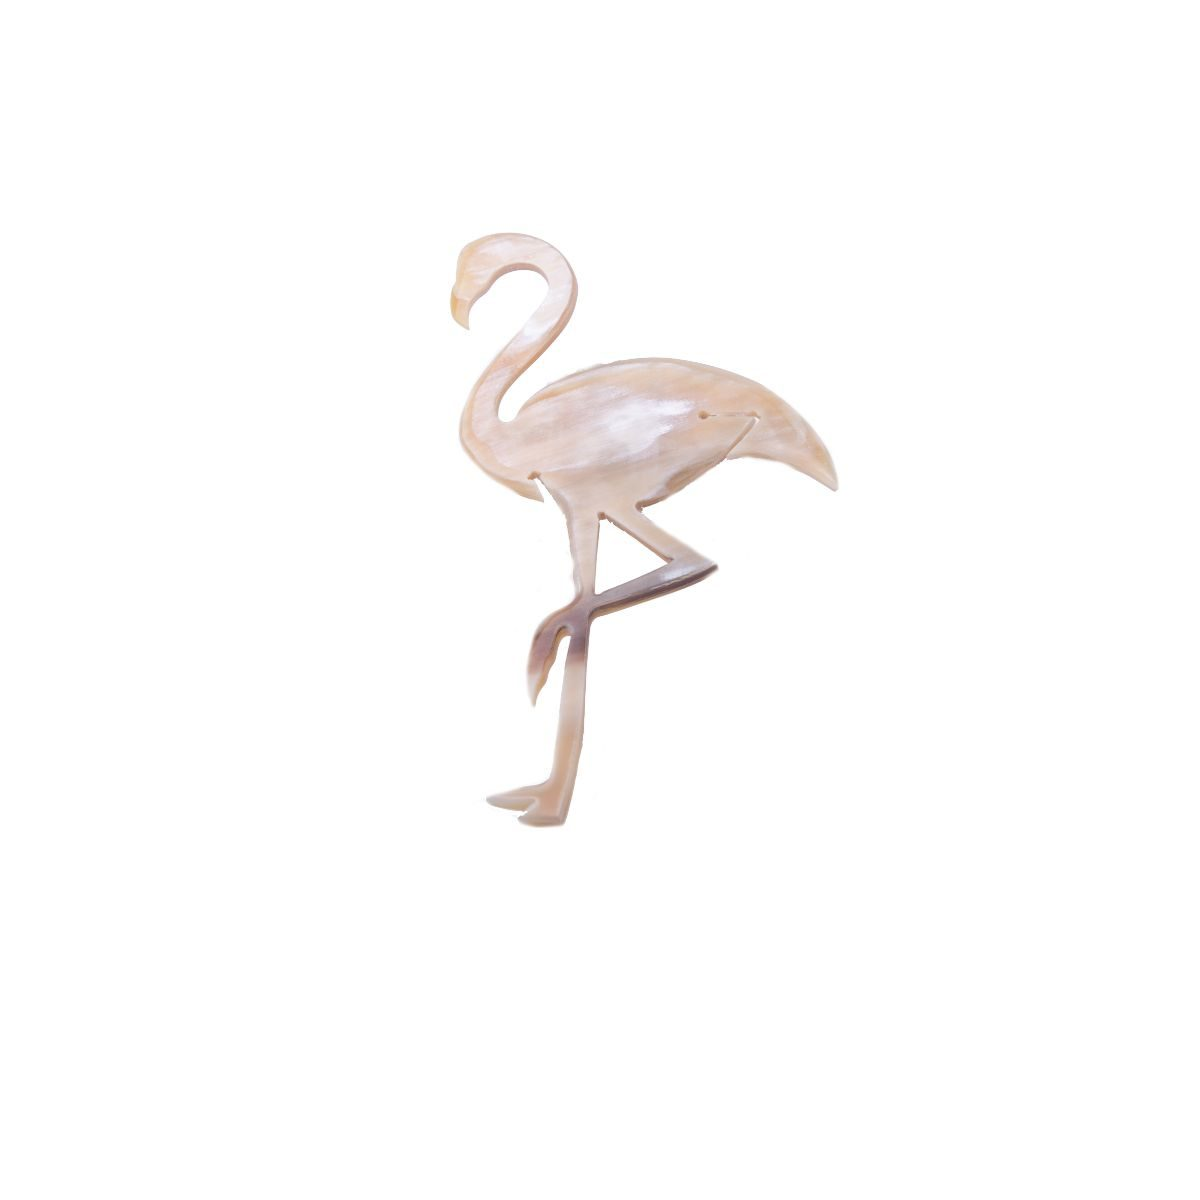 Flamenco natural horn brooch in the shape of a flamingo.